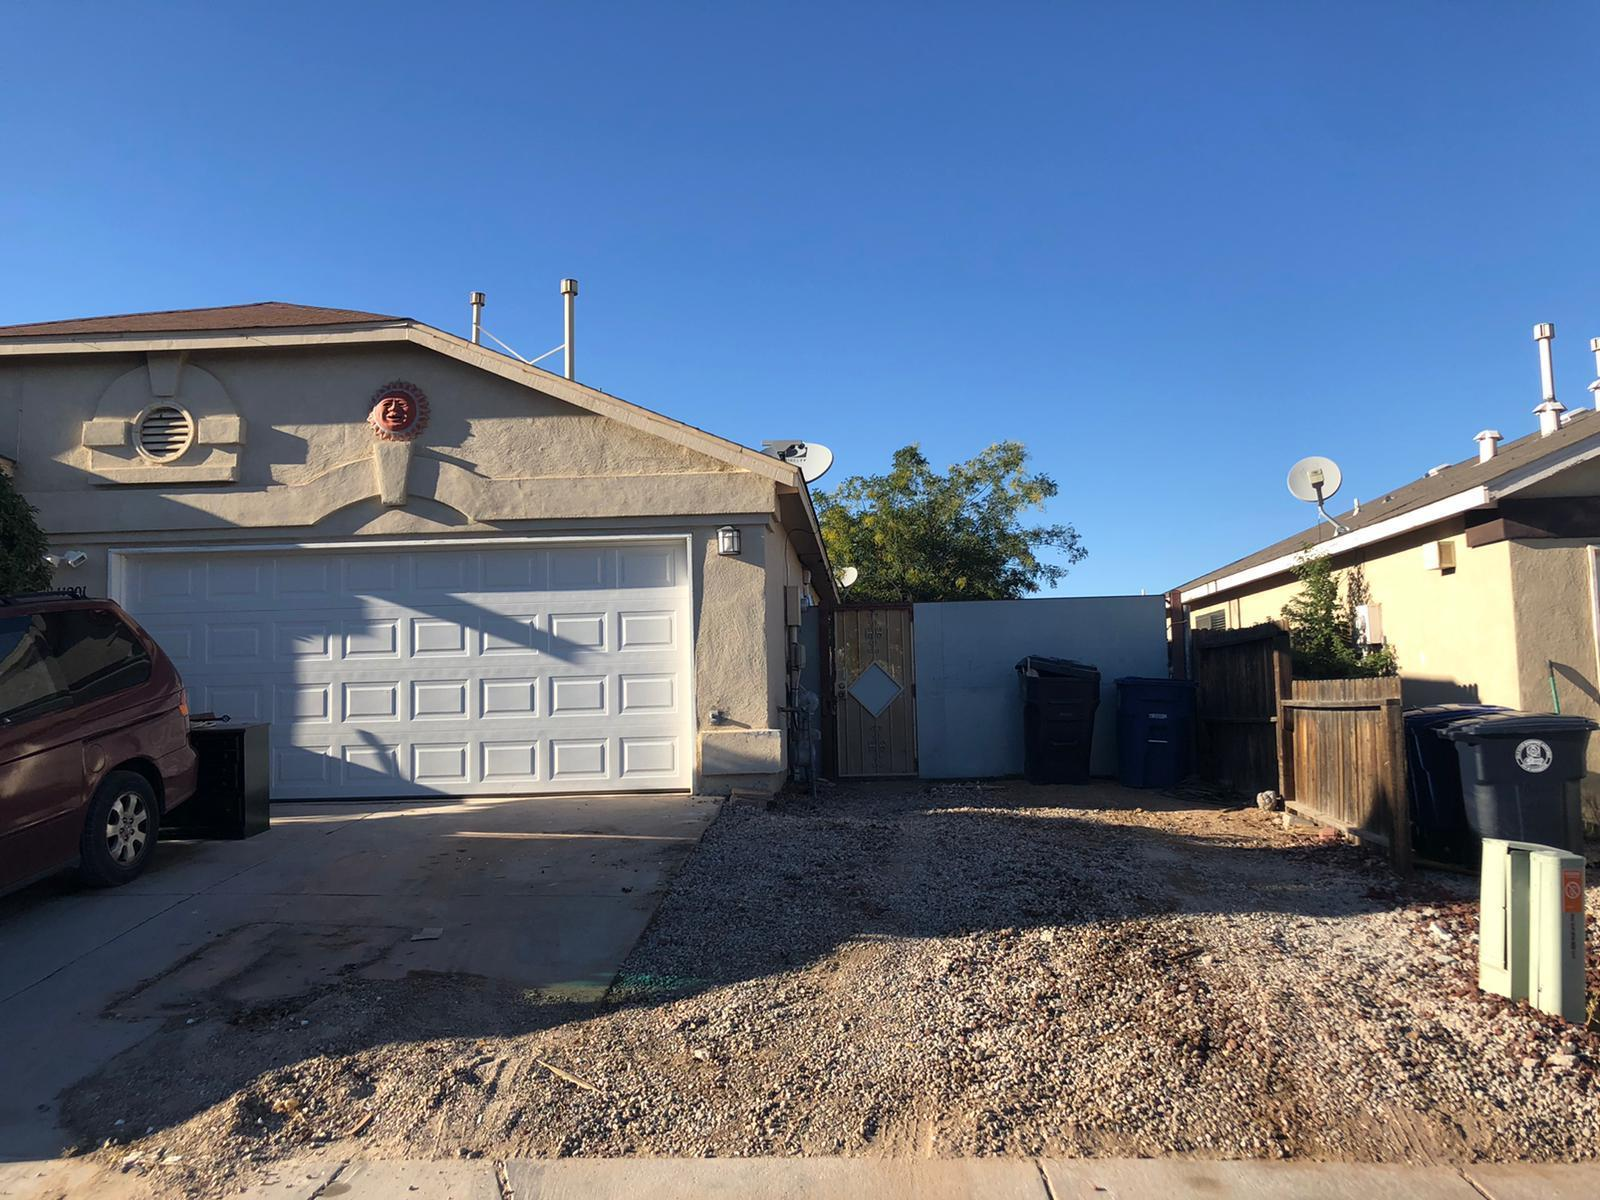 Great home plan, needs some upgrading such as painting and carpeting etc. big yard with access to the back patio, Lots of potential , Thiis one will sell fast